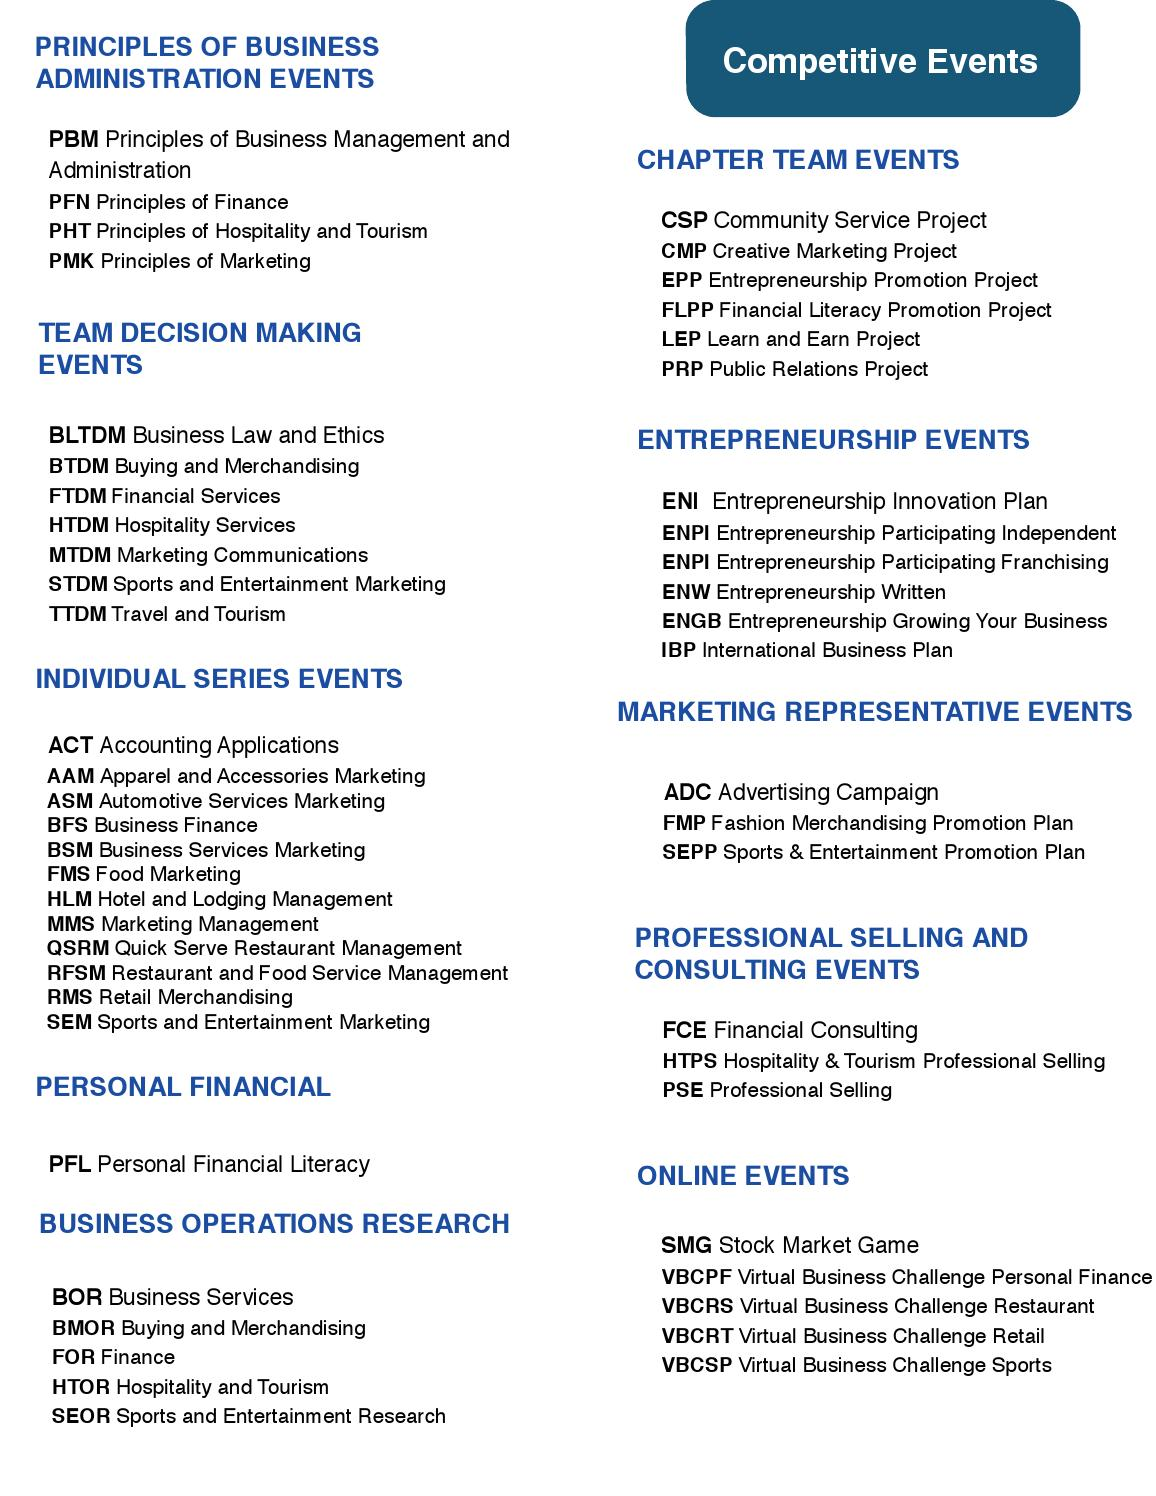 Deca Restaurant And Food Services Management